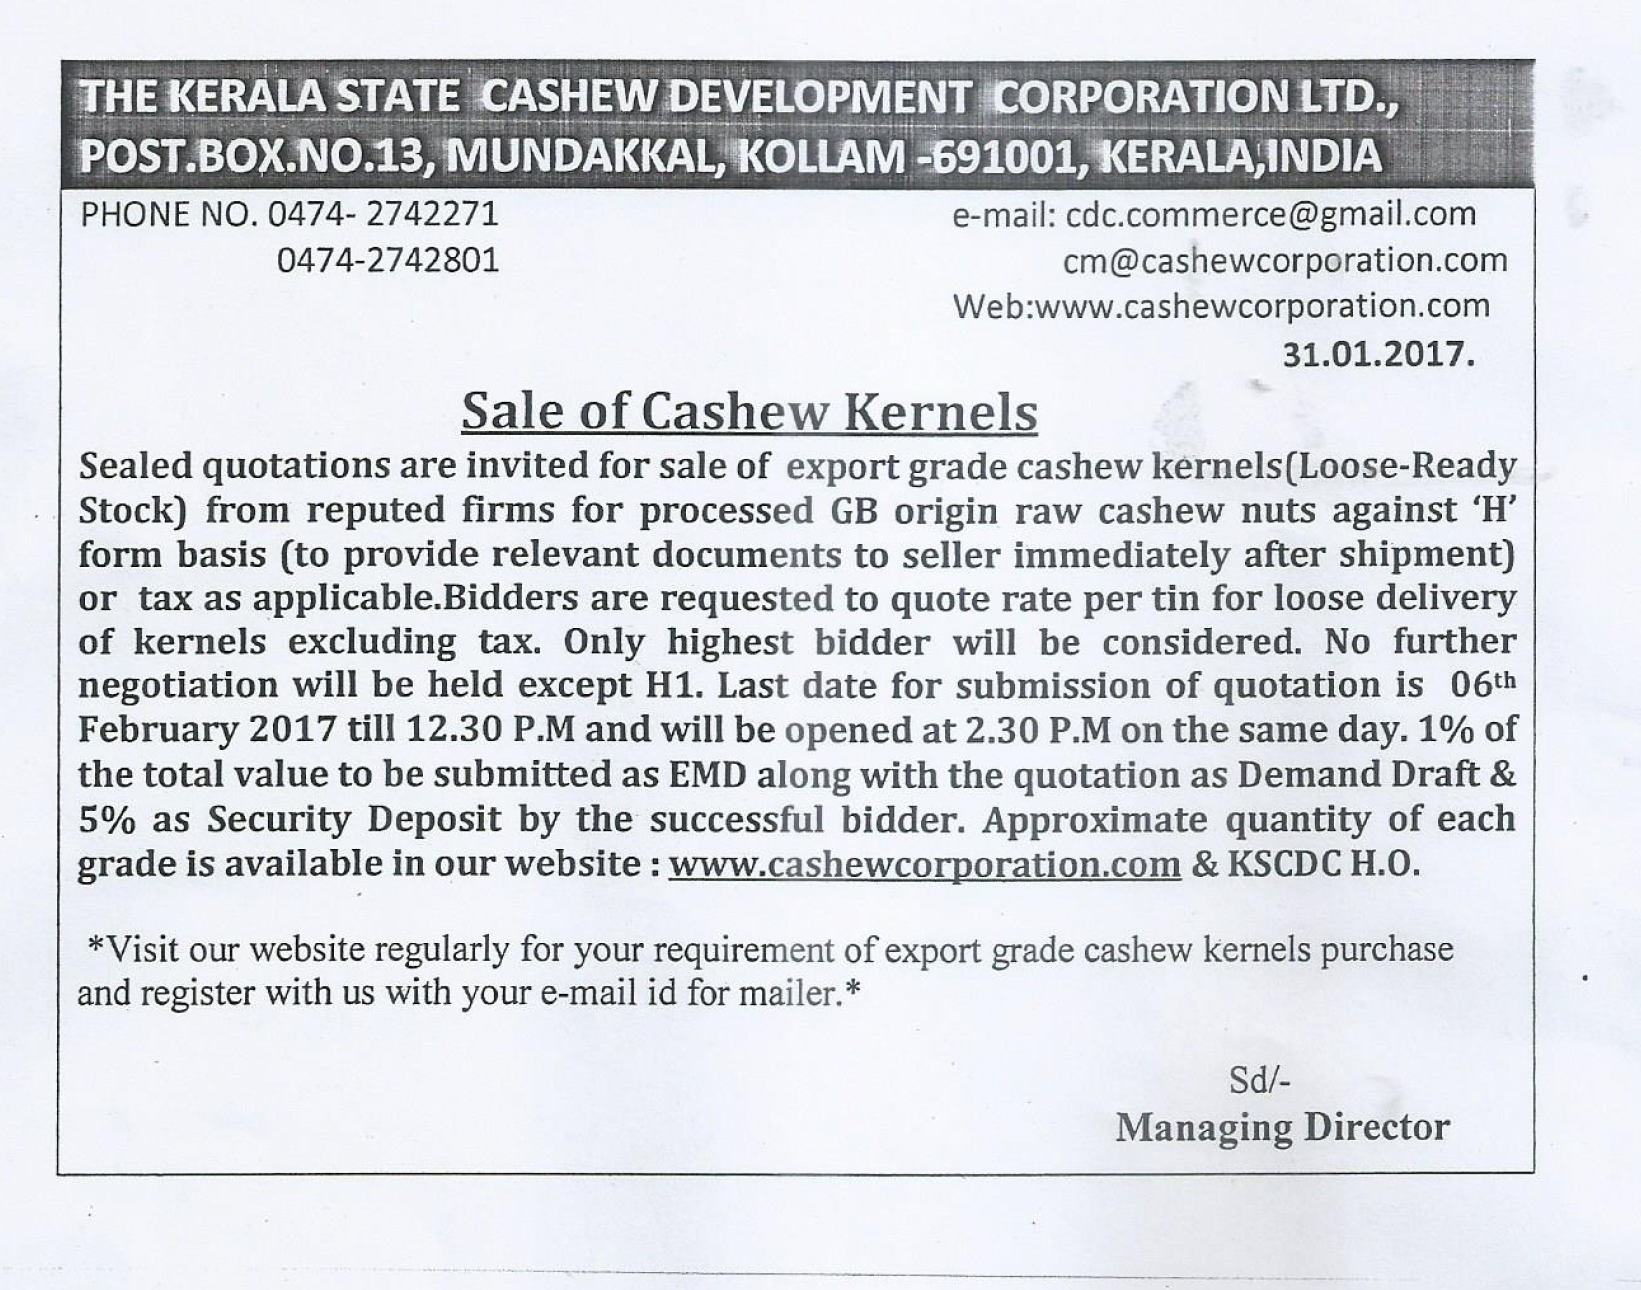 sale-of-cashew-kernals-1